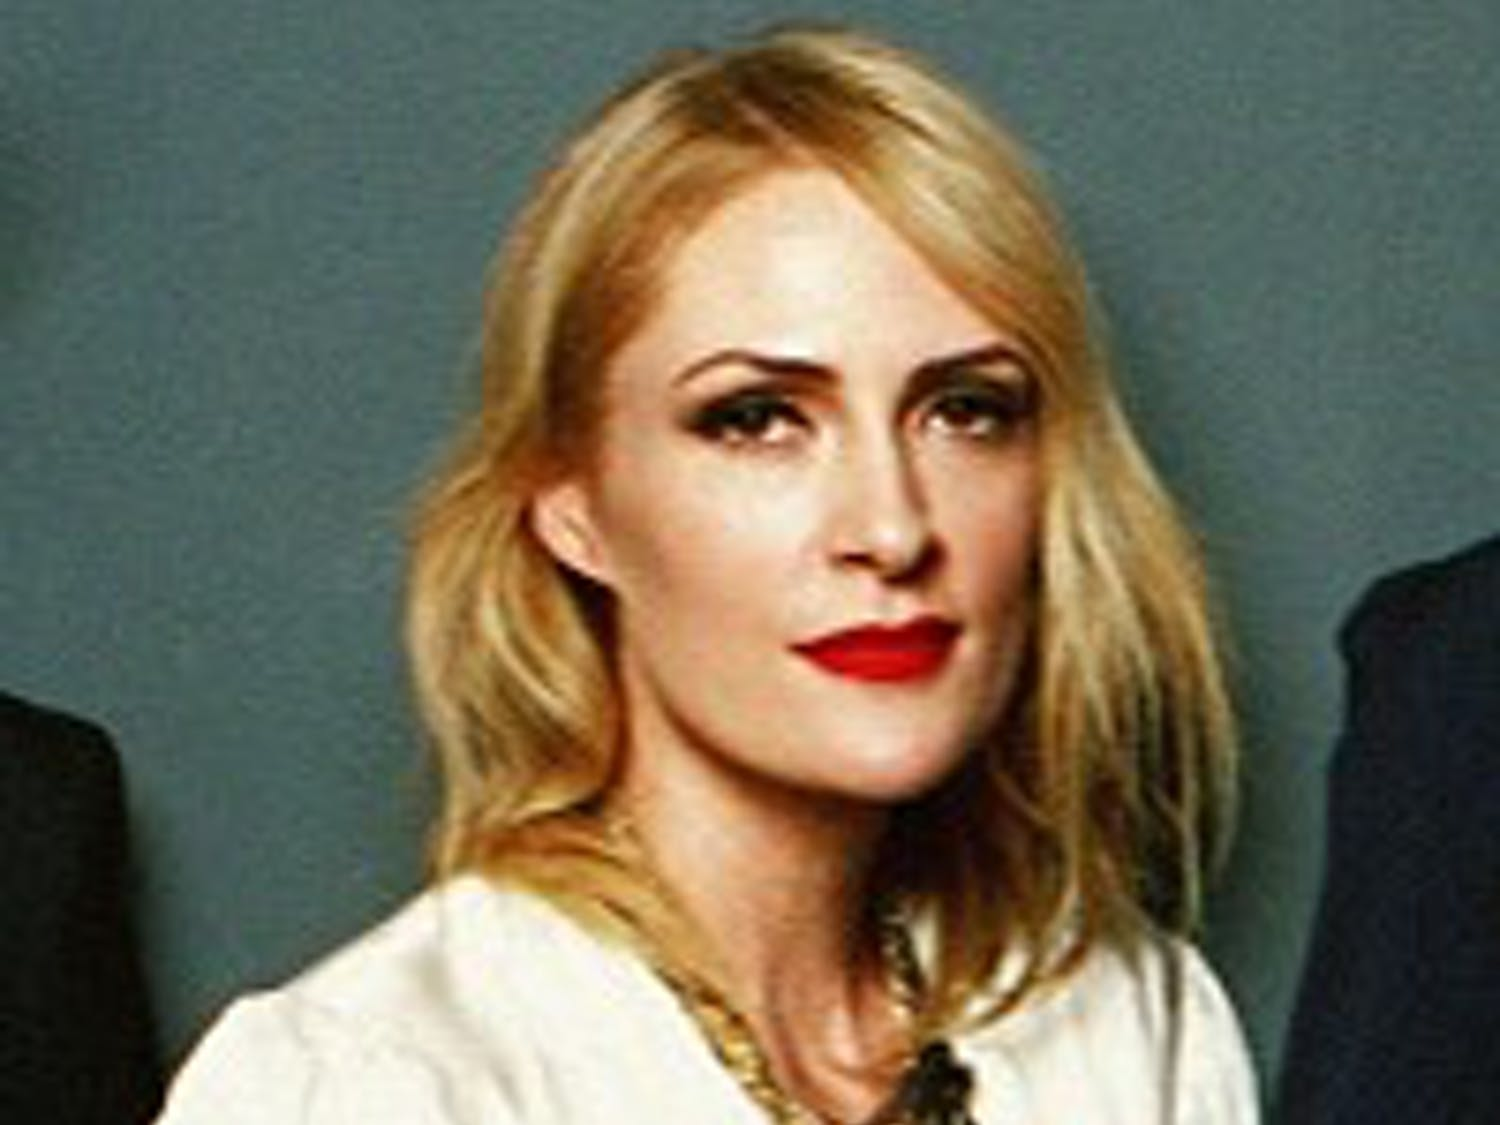 Emily Haines is the lead vocalist of the band Metric. Haines, along with the band, will be preforming at Memorial Hall Wednesday night. Photo courtesy of Brantley Gutierrez.